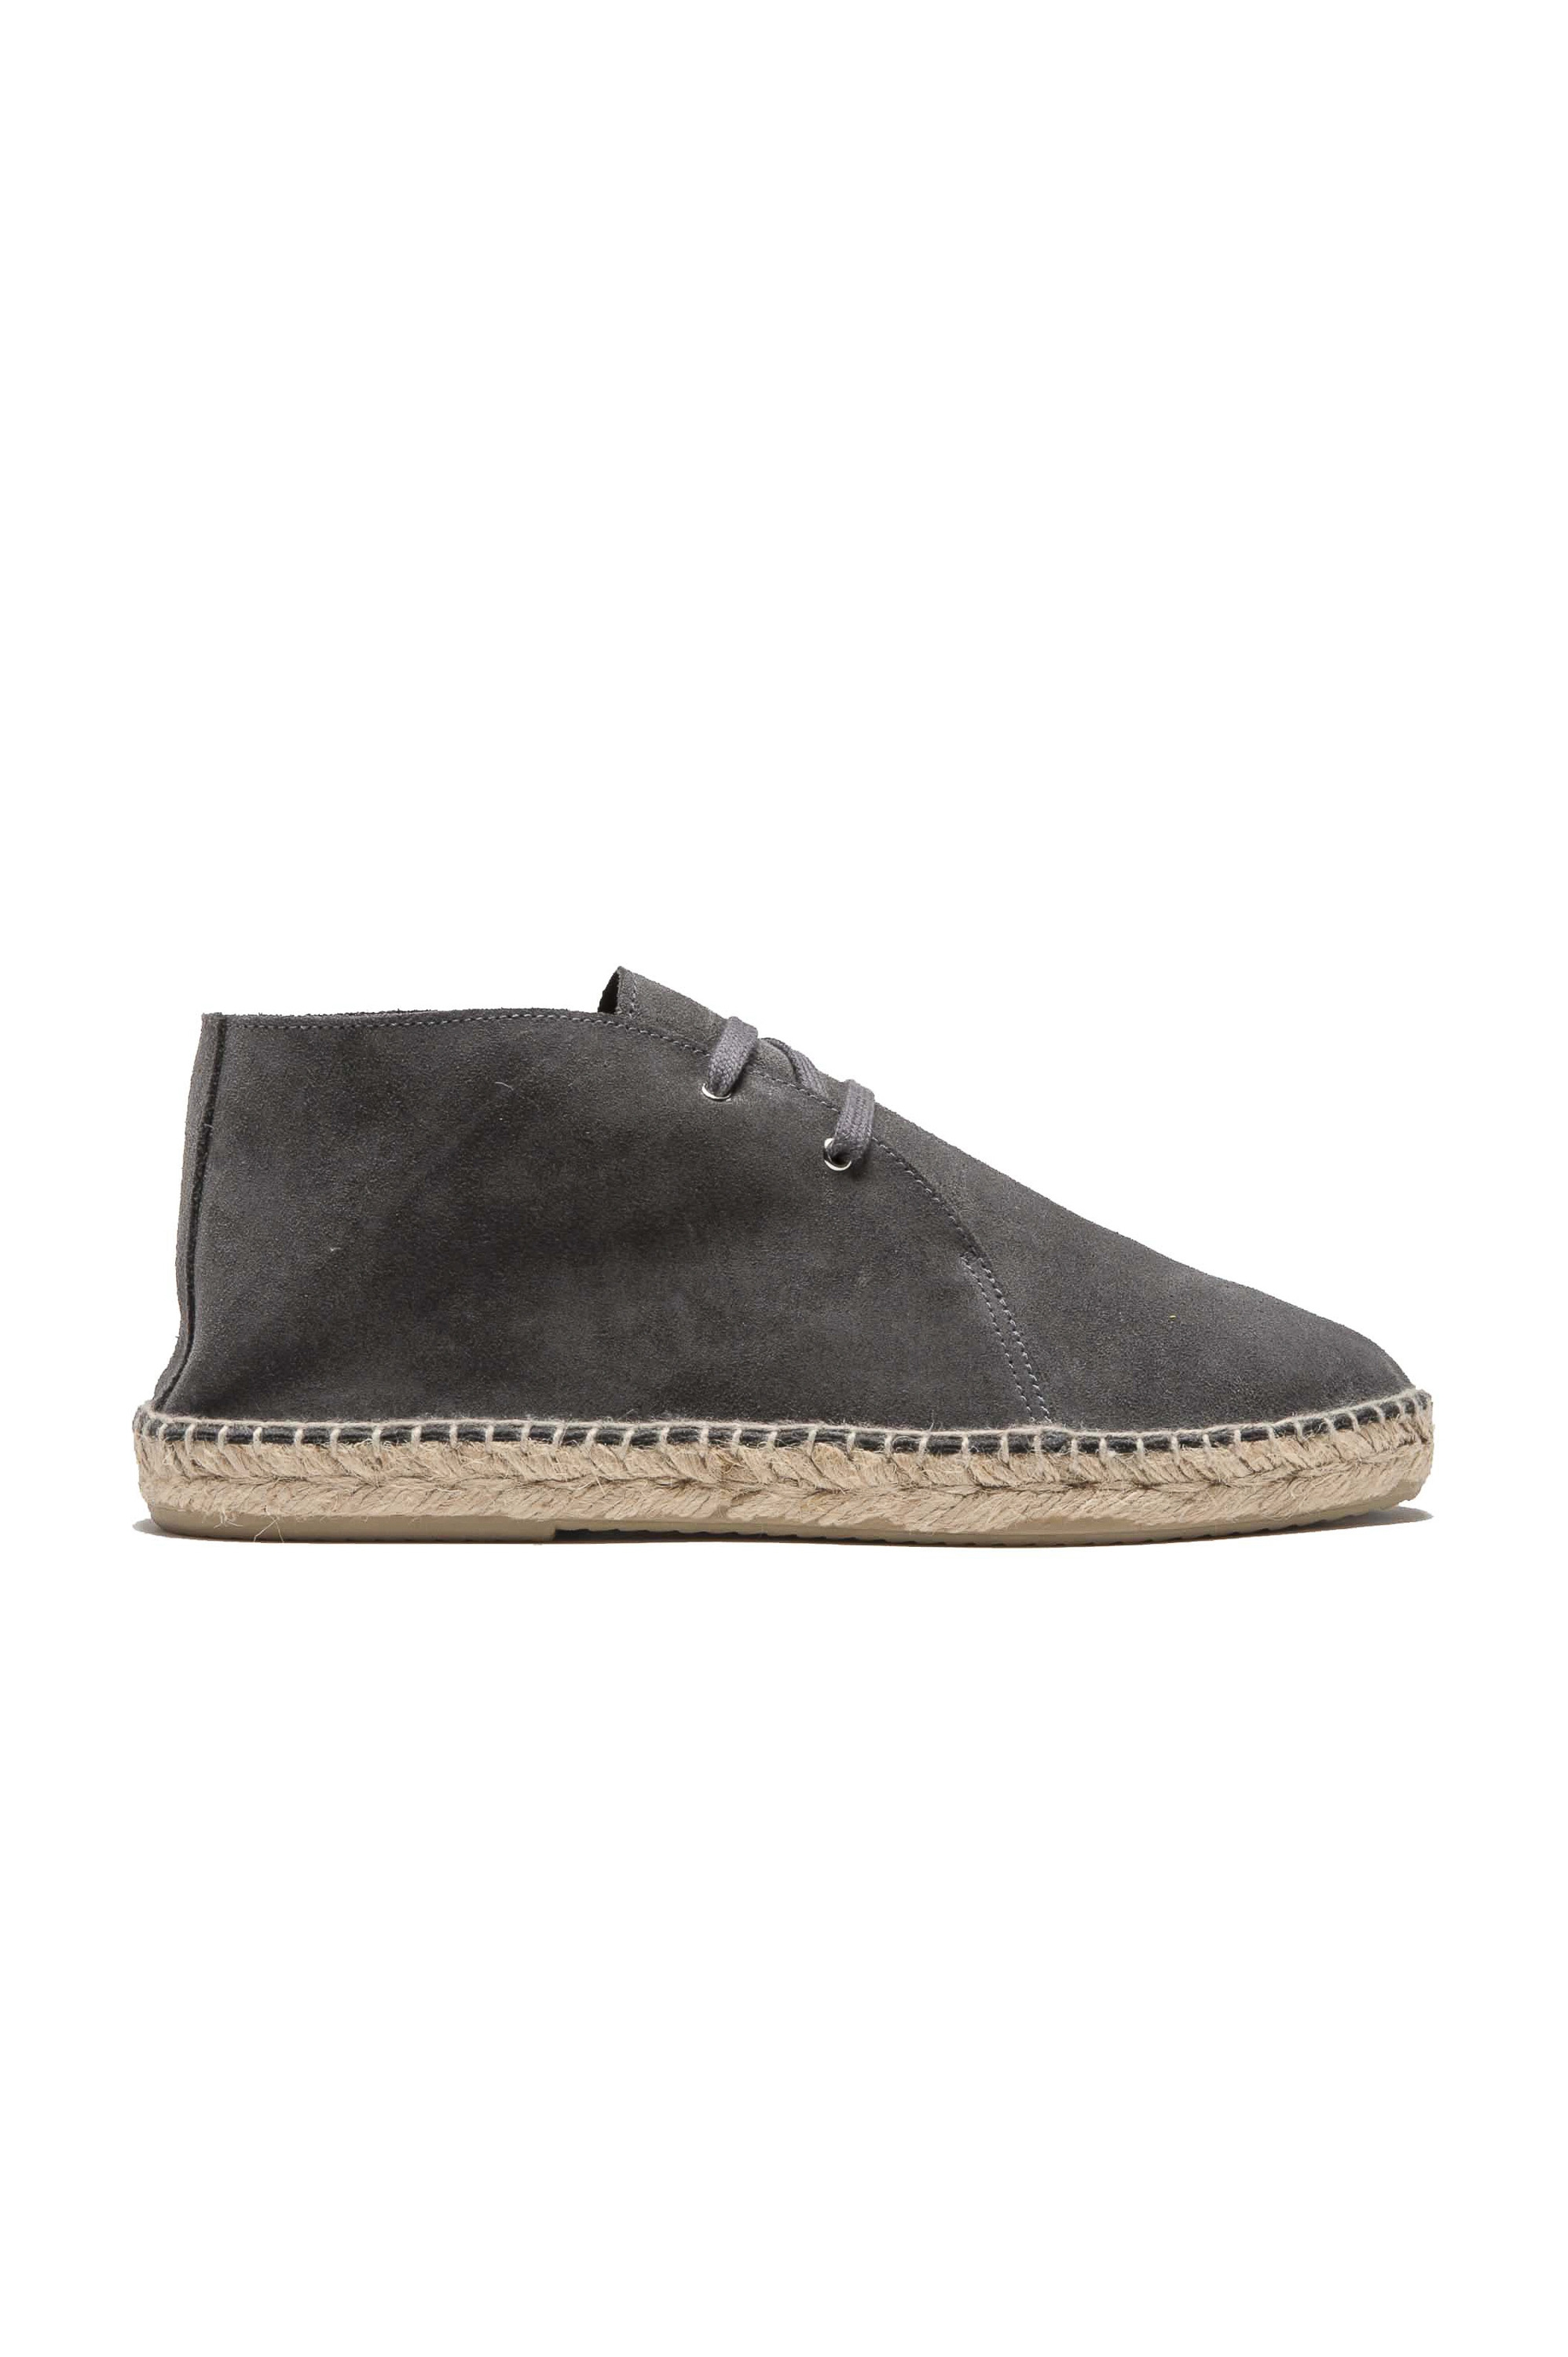 SBU 03183_2021SS Original grey suede leather lace up espadrilles with rubber sole 01